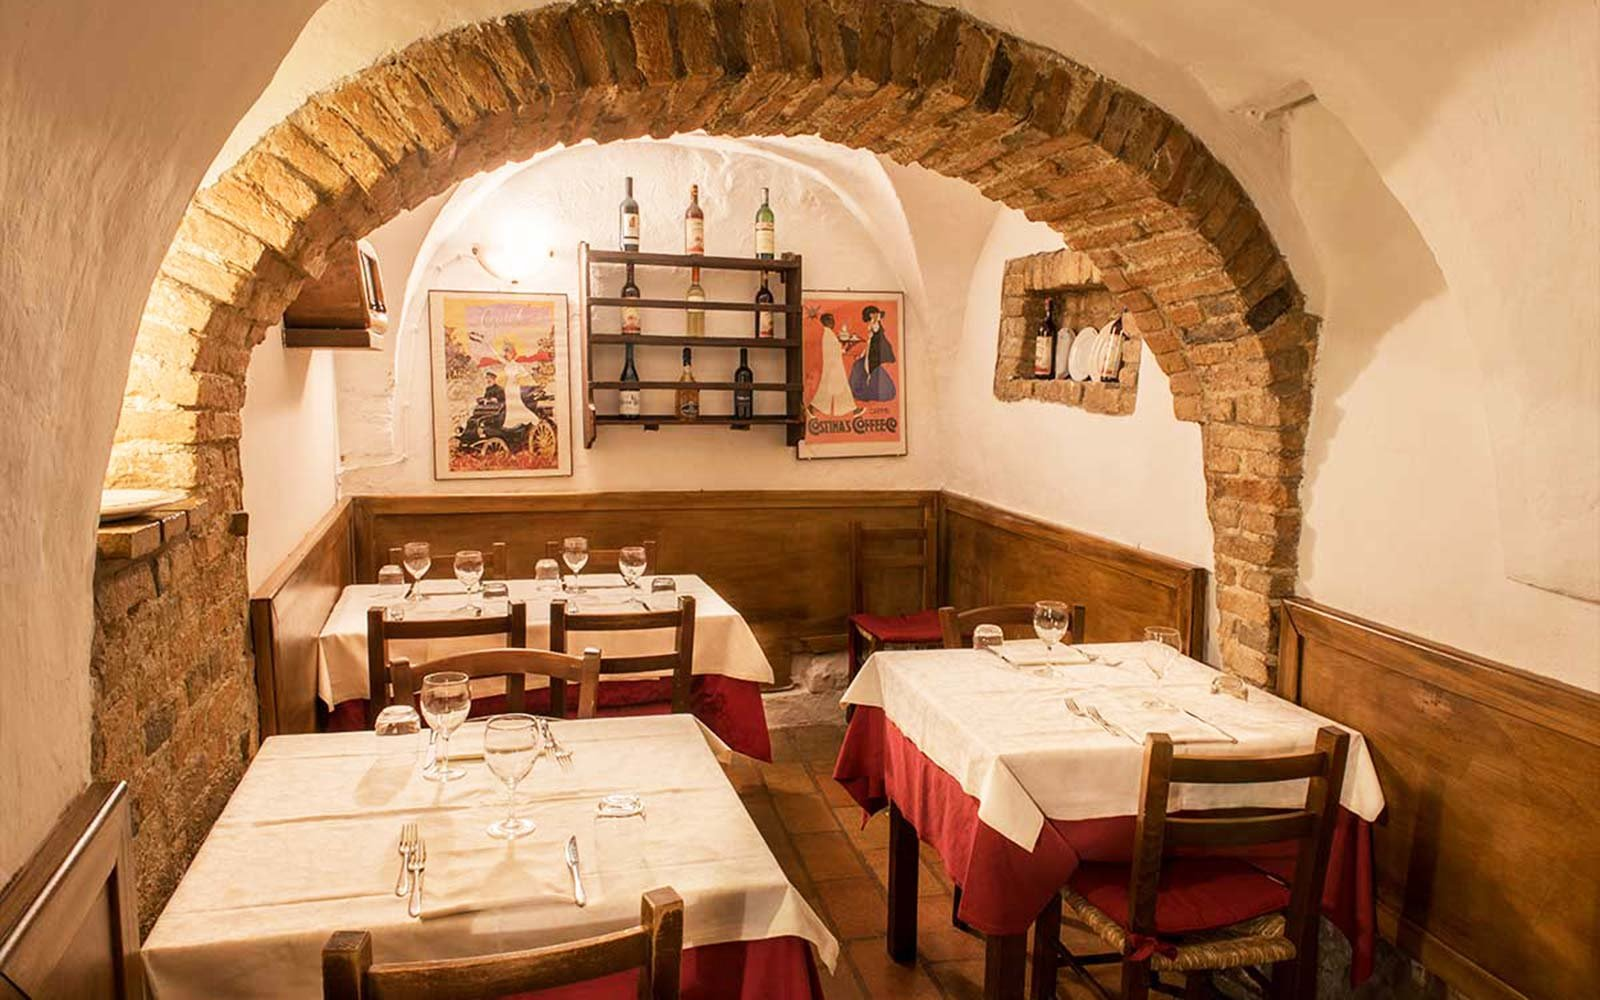 Favorite Casual Restaurant: Restaurant Gallo di Oro